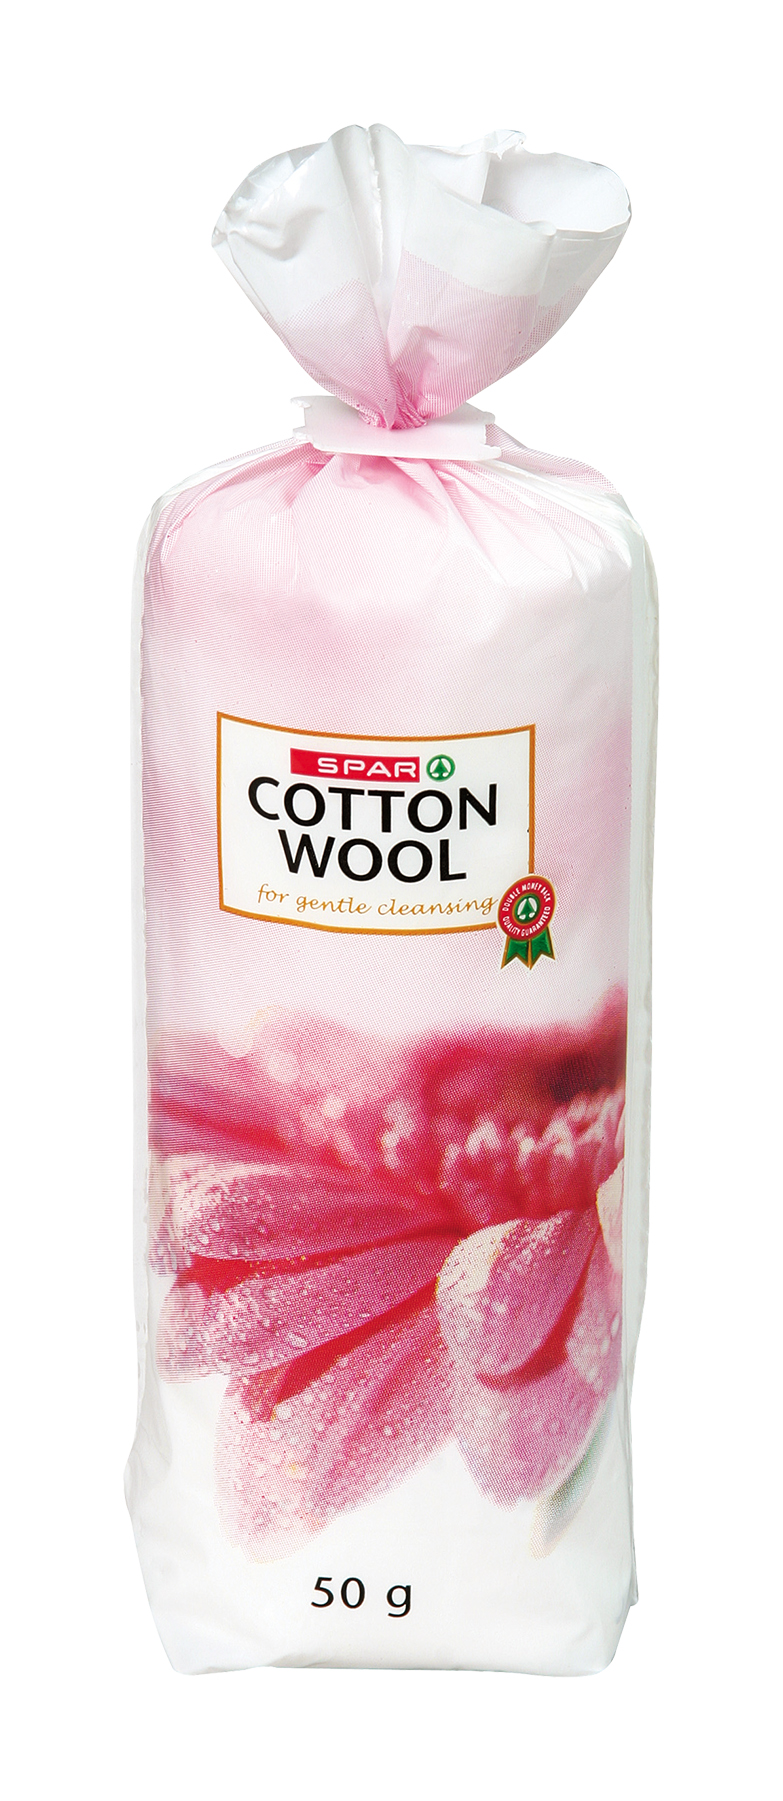 cotton wool roll 50g